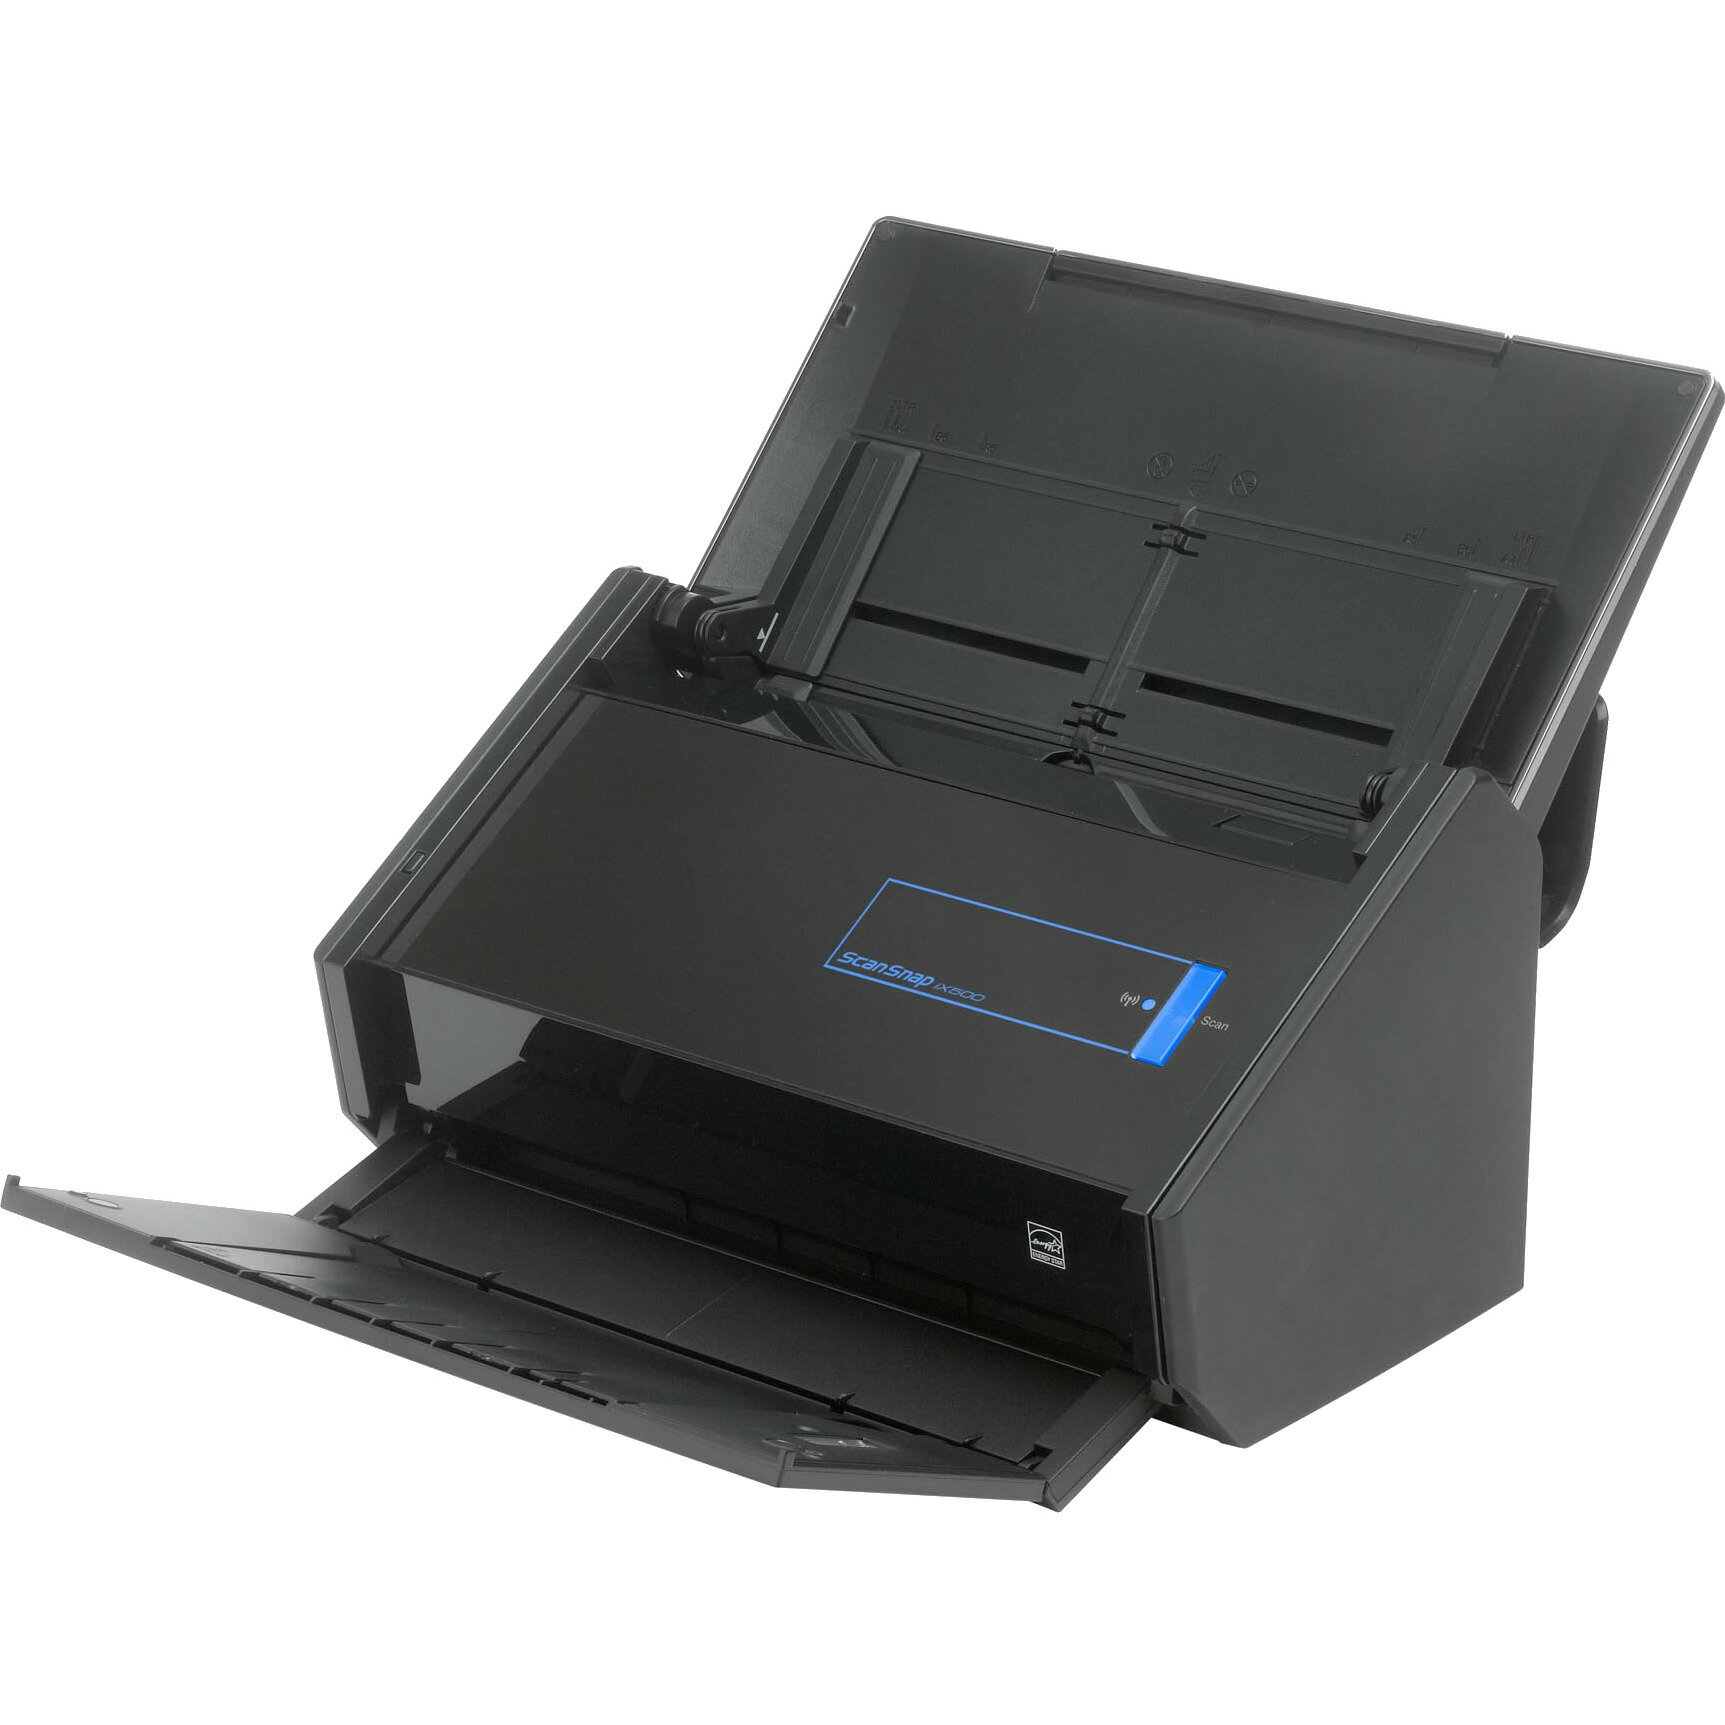 Fujitsu ScanSnap iX500 Sheetfed Scanner - 600 dpi Optical - 25 ppm (Mono) - 25 ppm (Color) - USB 0